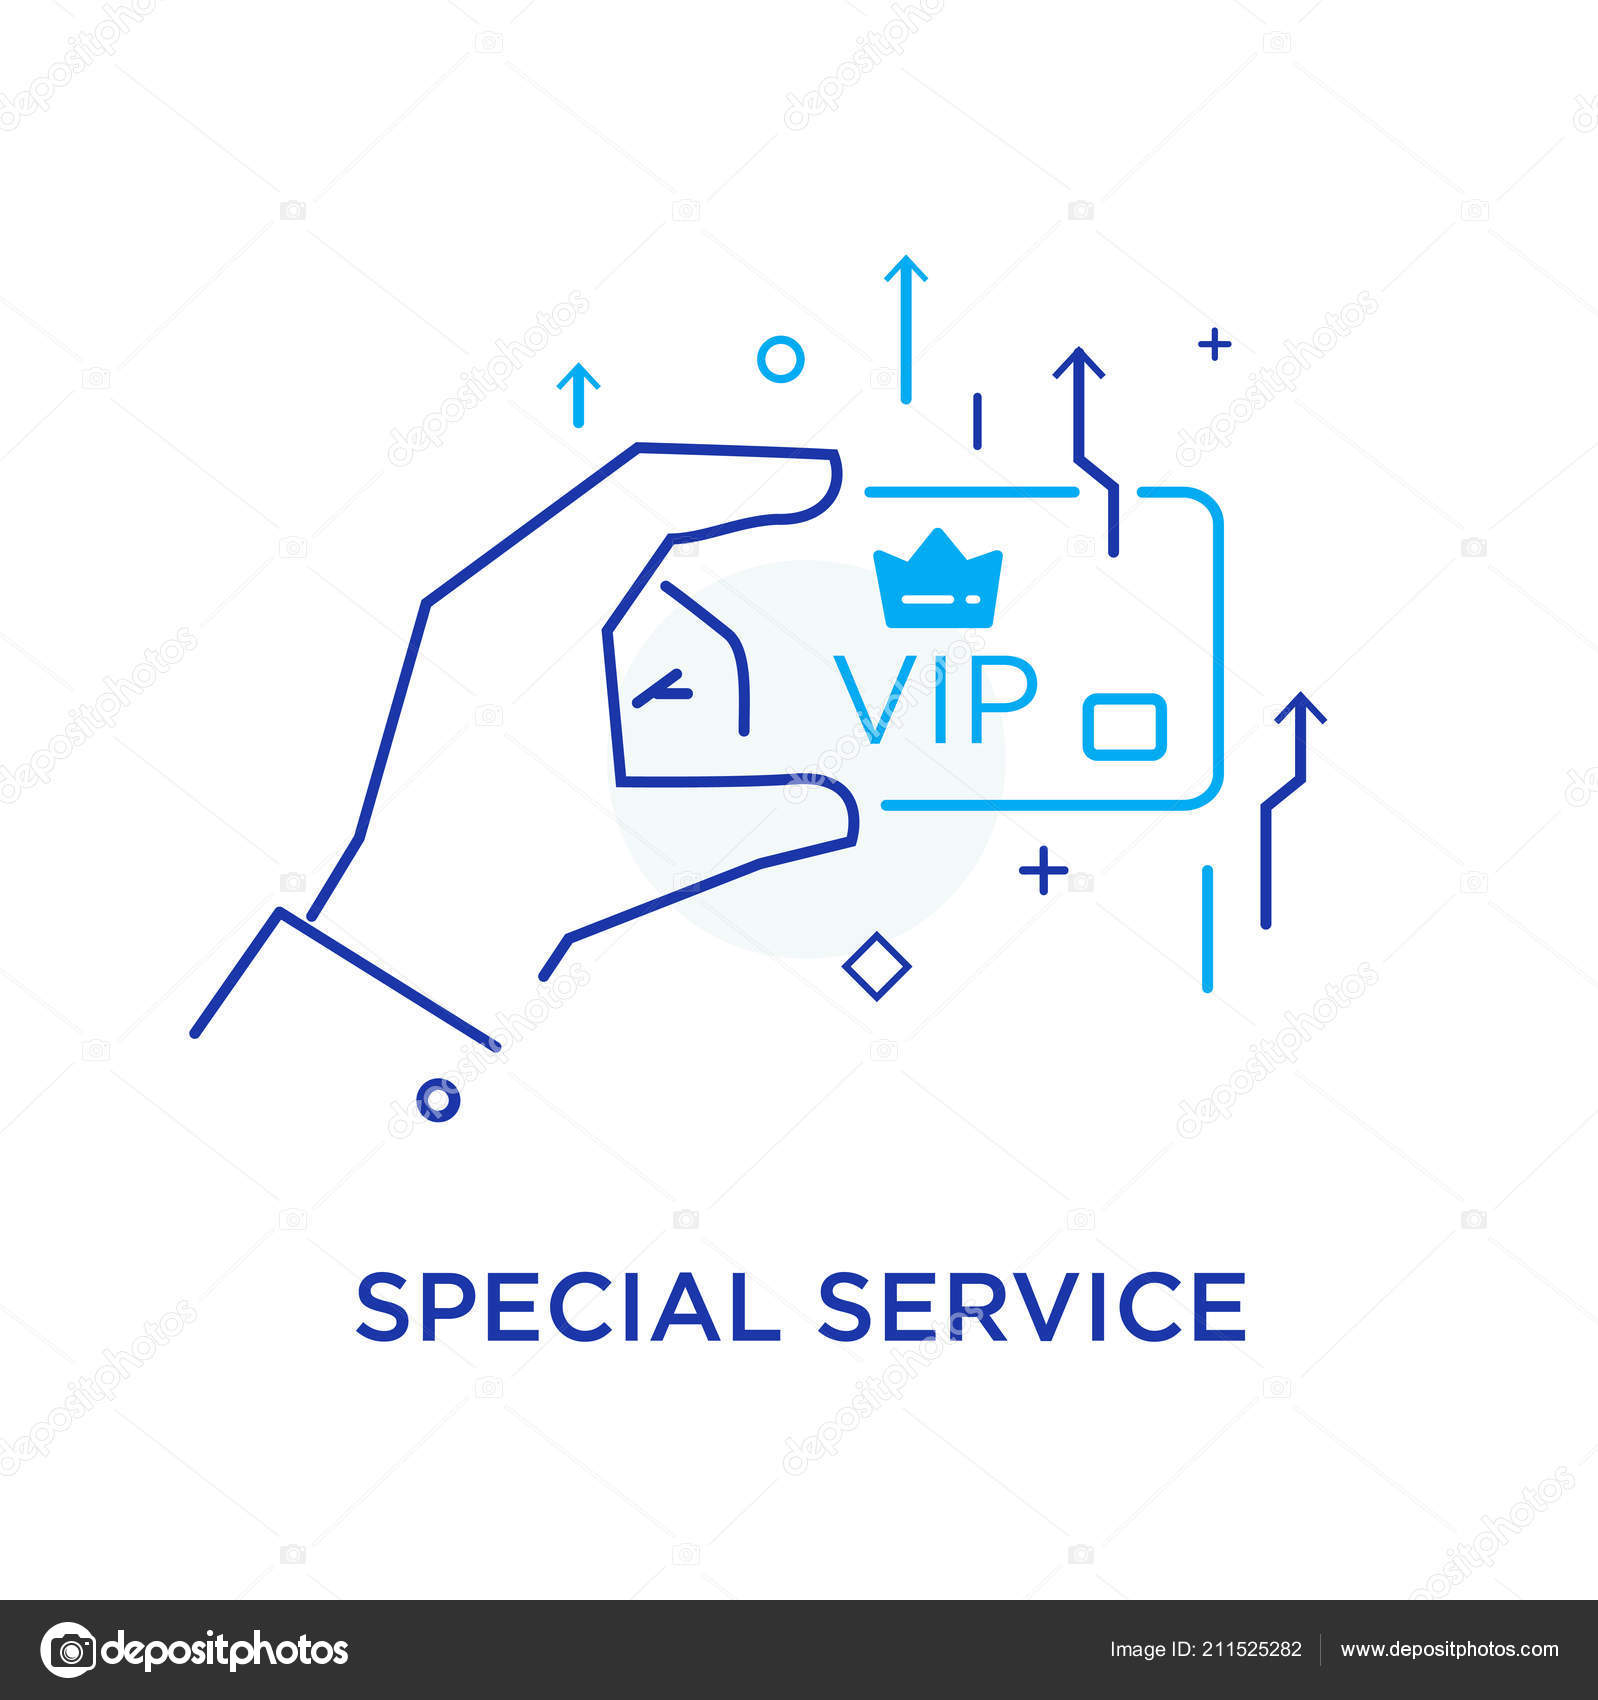 Business credit card vip workflow growth graphics business business credit card vip workflow growth graphics business development milestones start up linear illustration icons infographics colourmoves